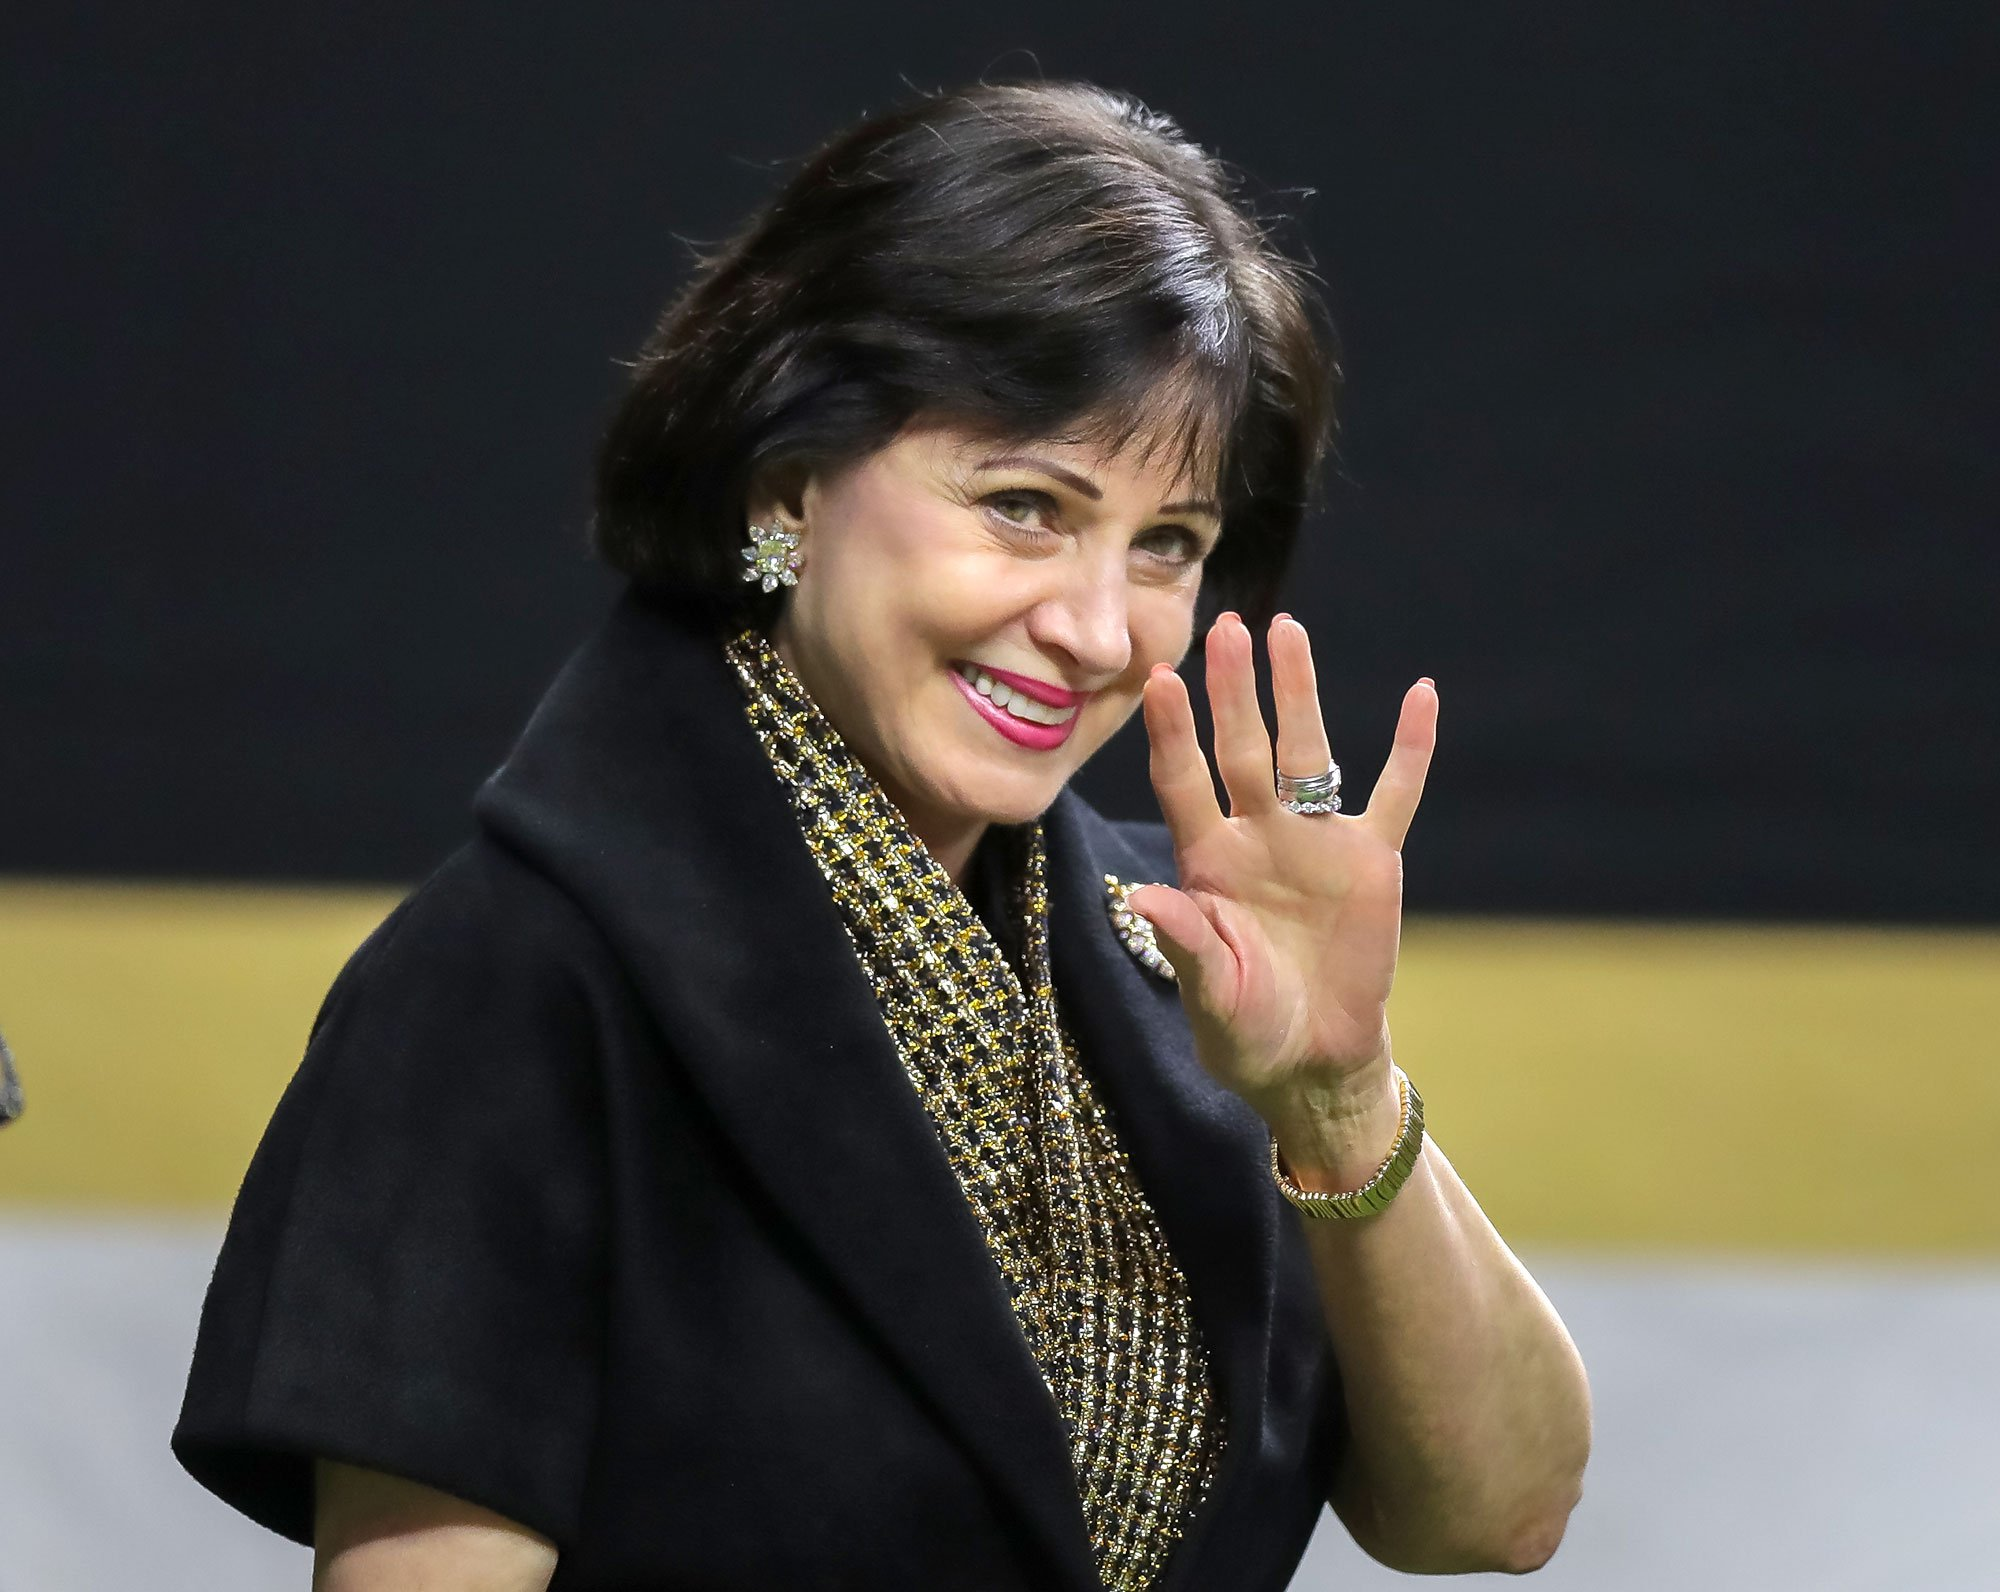 Saints Owner Gayle Benson Pays Nearly $100,000 to Settle New Orleans Fans' Walmart Layaways